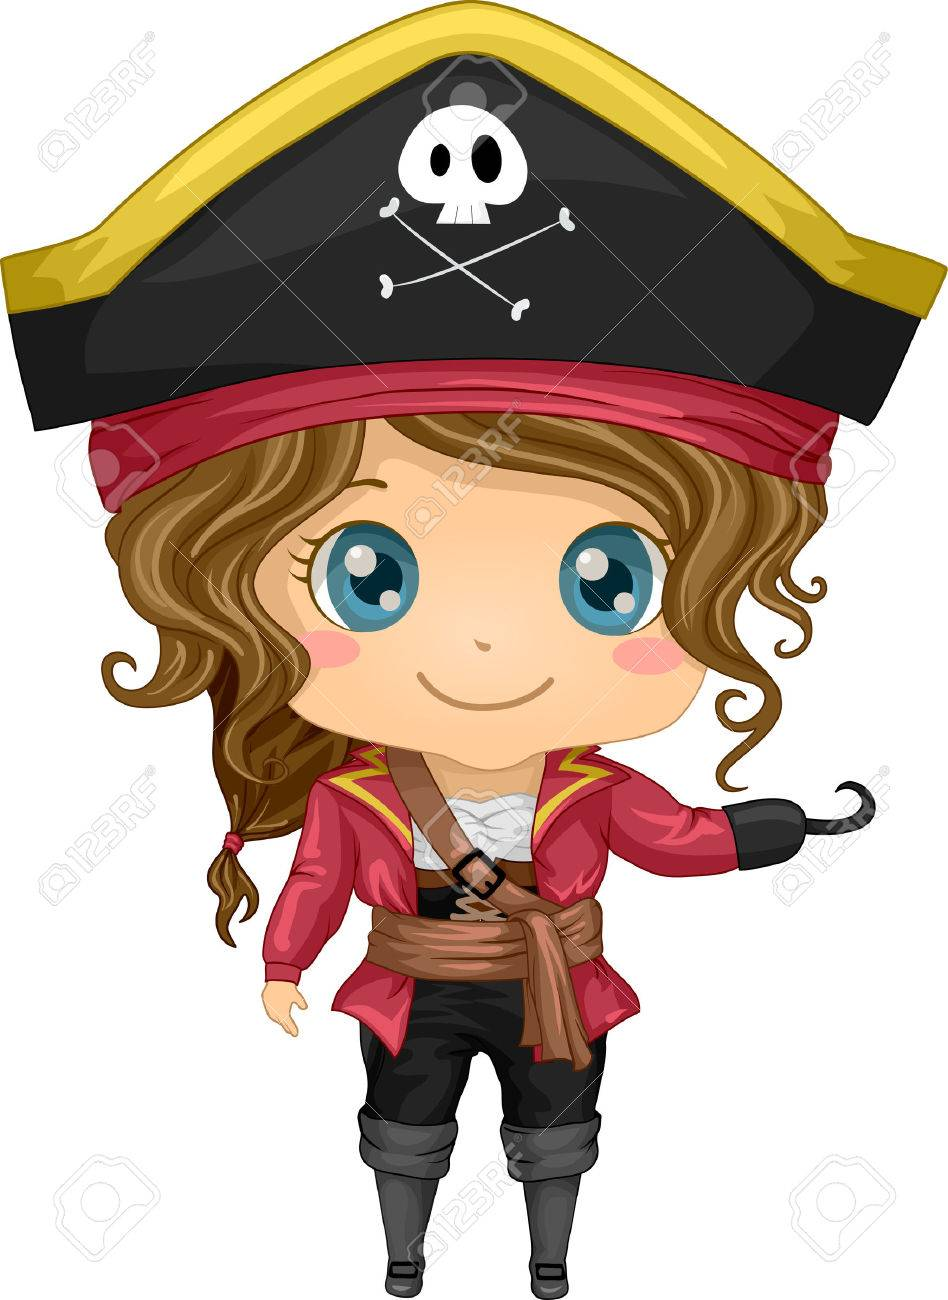 Illustration Featuring a Girl Wearing a Pirate Costume.